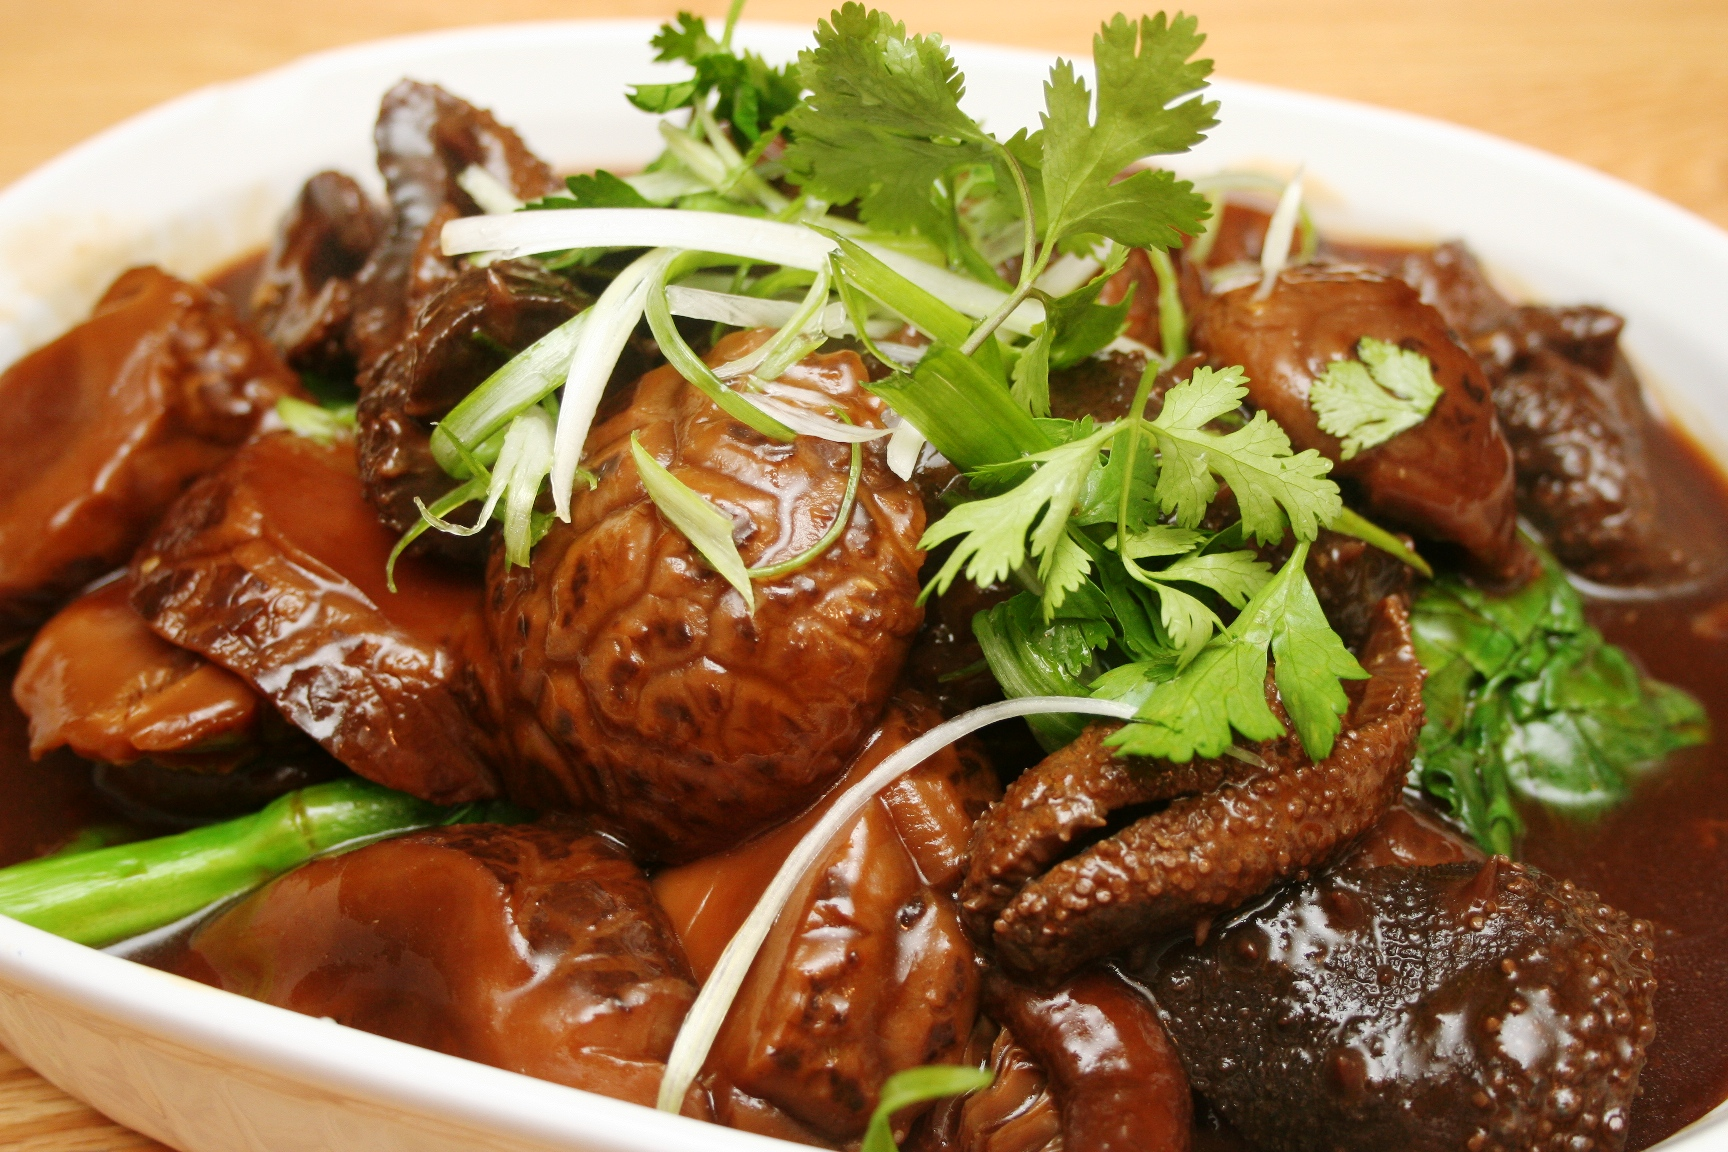 SEA CUCUMBER IN BROWN SAUCE RECIPE